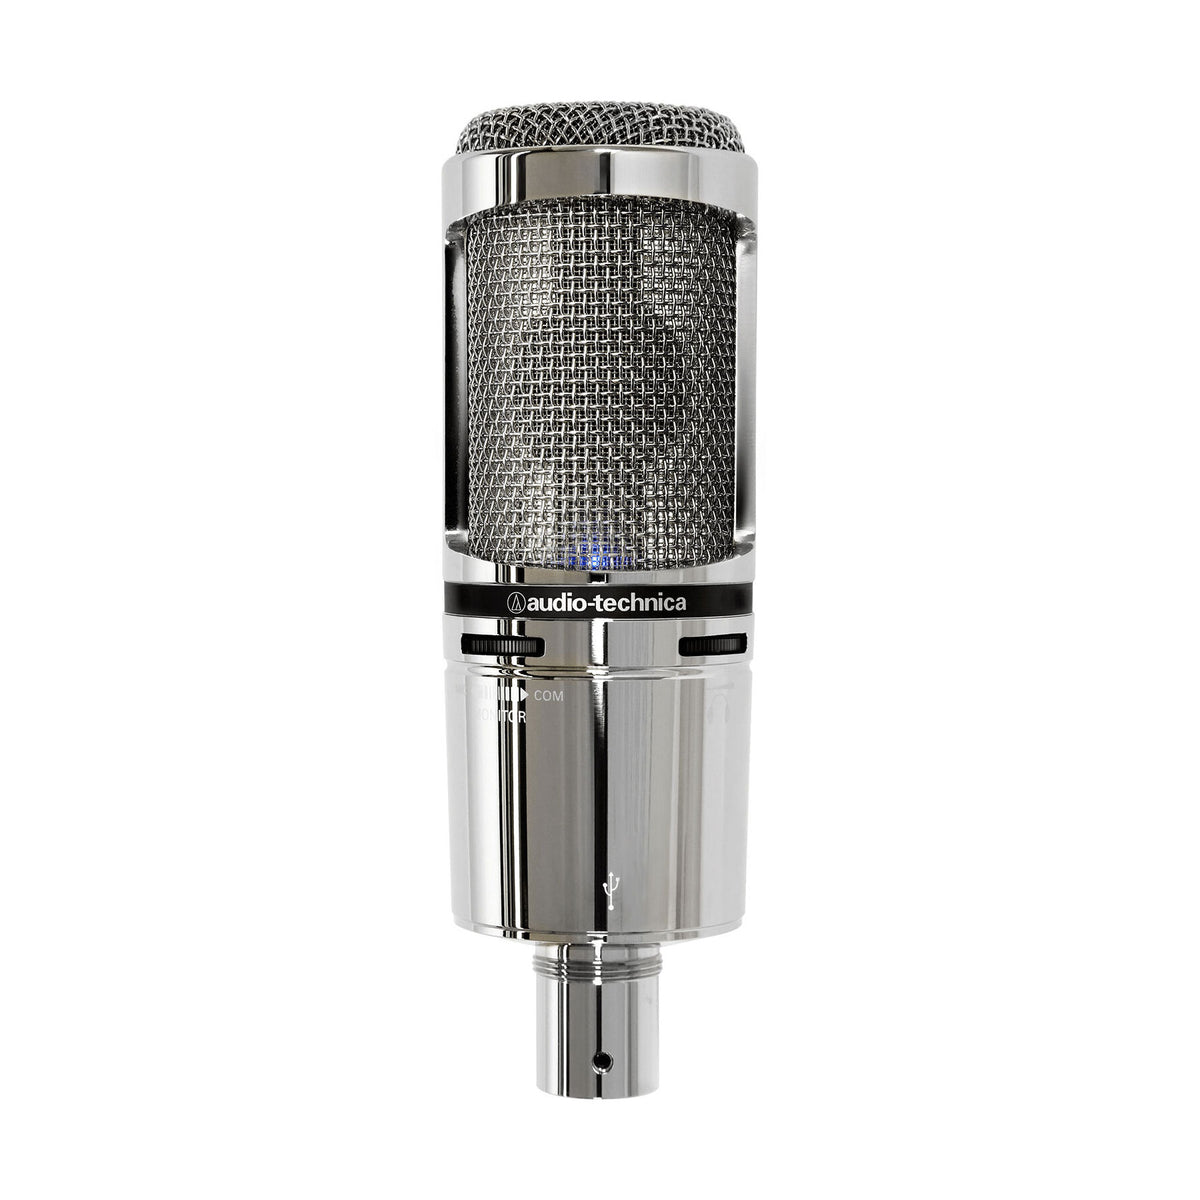 Audio-Technica: AT2020USB+ USB Microphone - Limited Edition Chrome